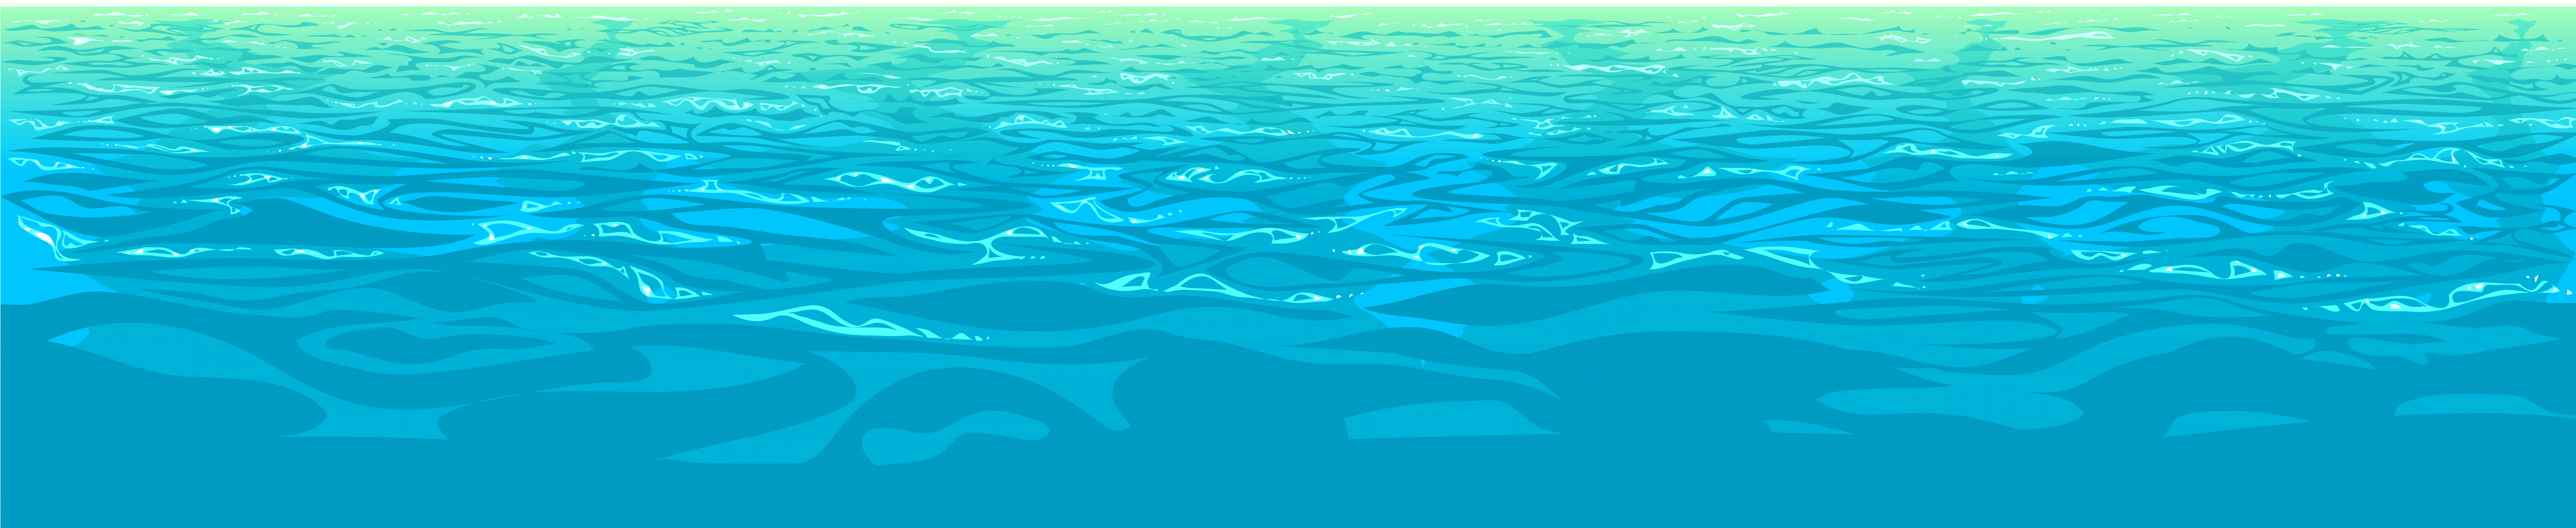 Water ocean background clipart picture free library HD Sea Water Png Clipart - Ocean With No Background , Free ... picture free library